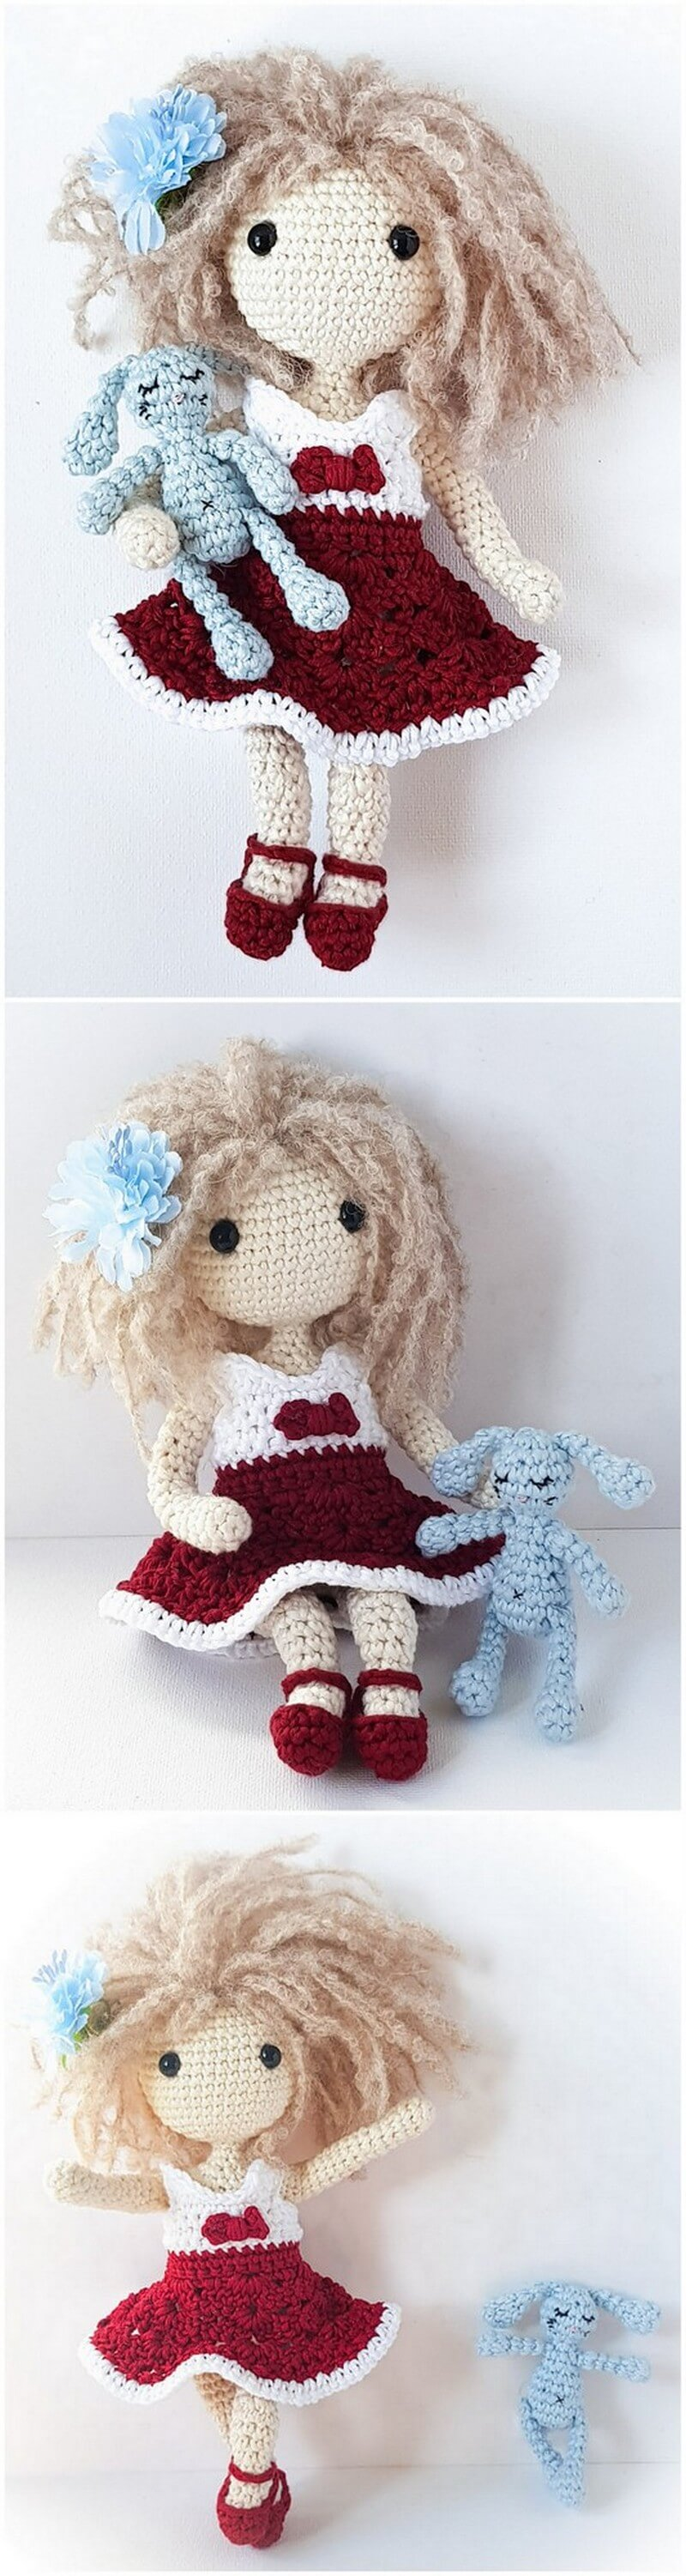 Crochet Amigurumi Doll Pattern (60)